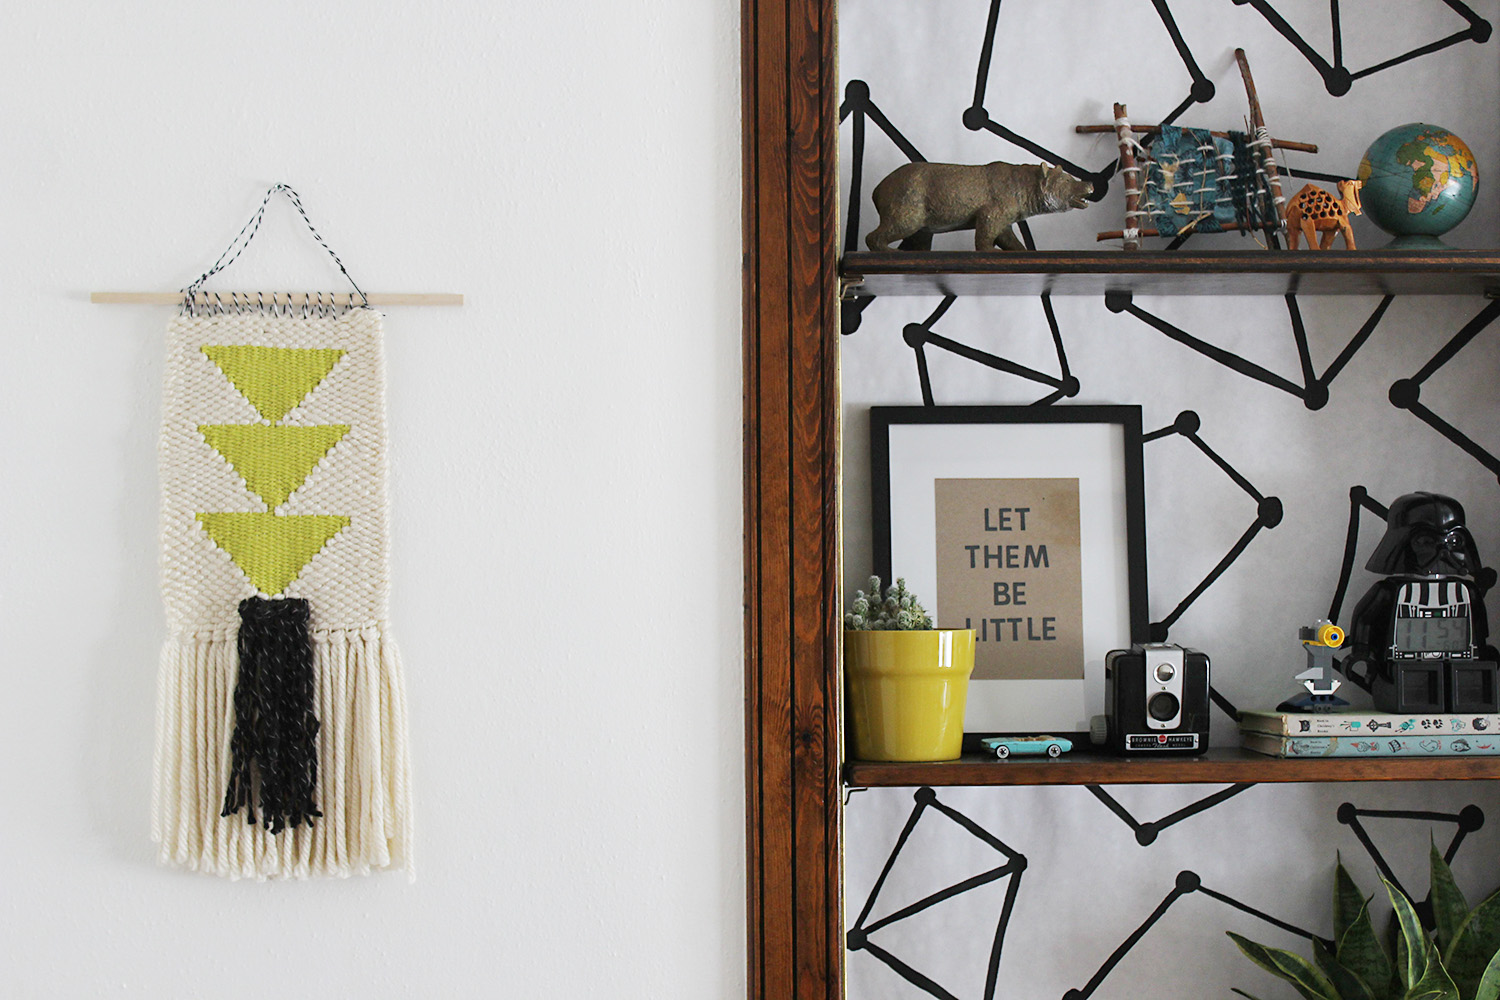 Wall Decor in Kids' Shared Room